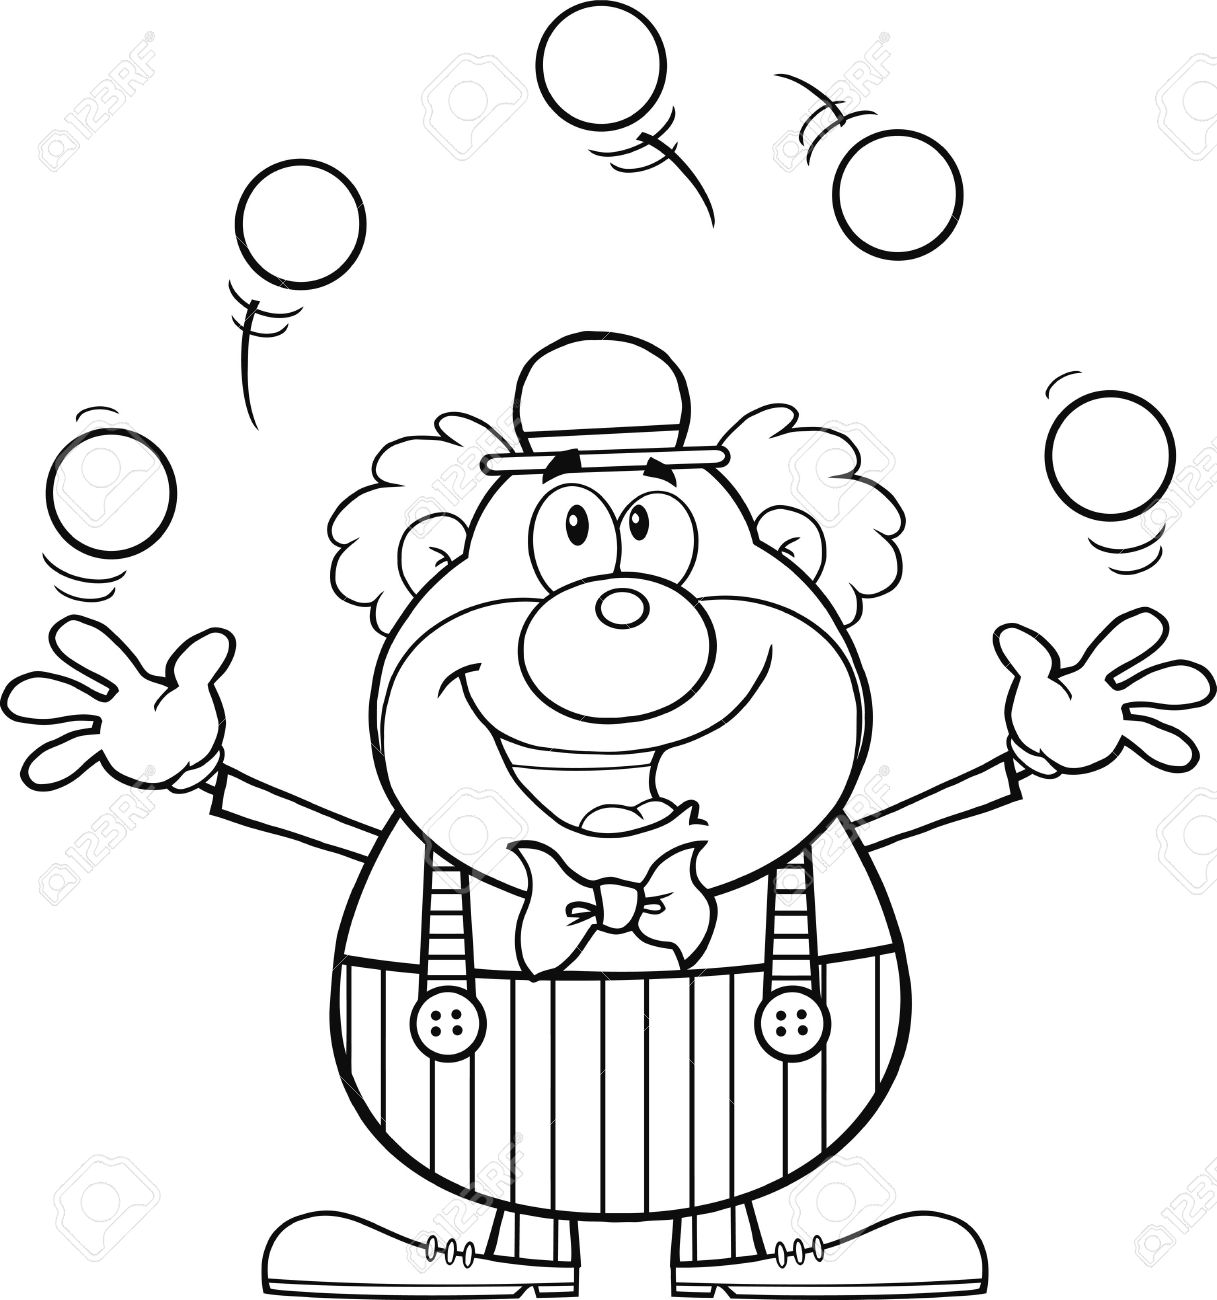 Clown clipart black and white 5 » Clipart Station.